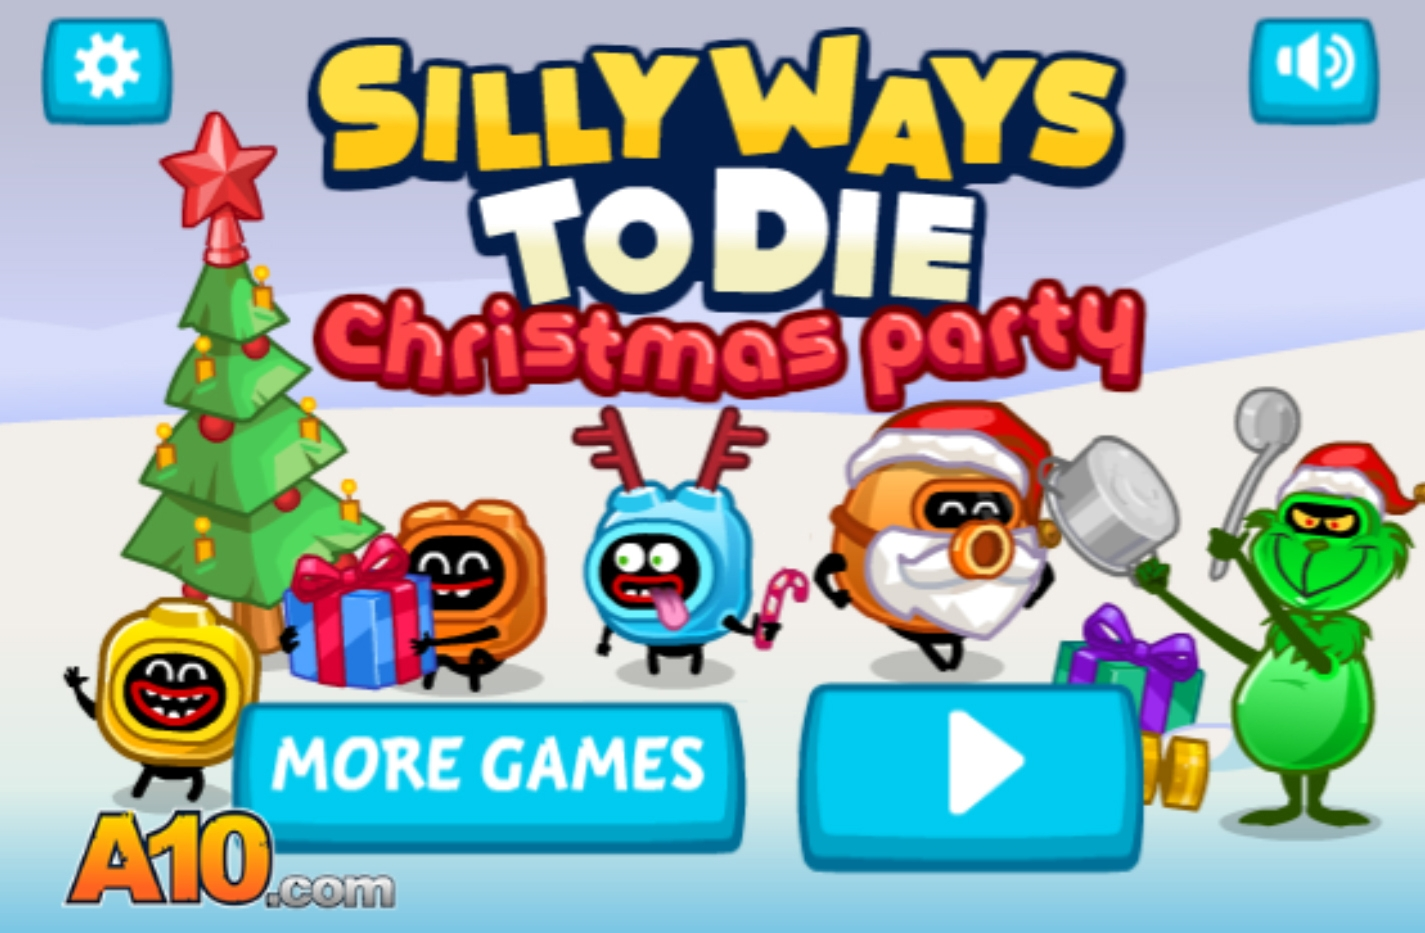 Silly Ways To Die Christmas Party